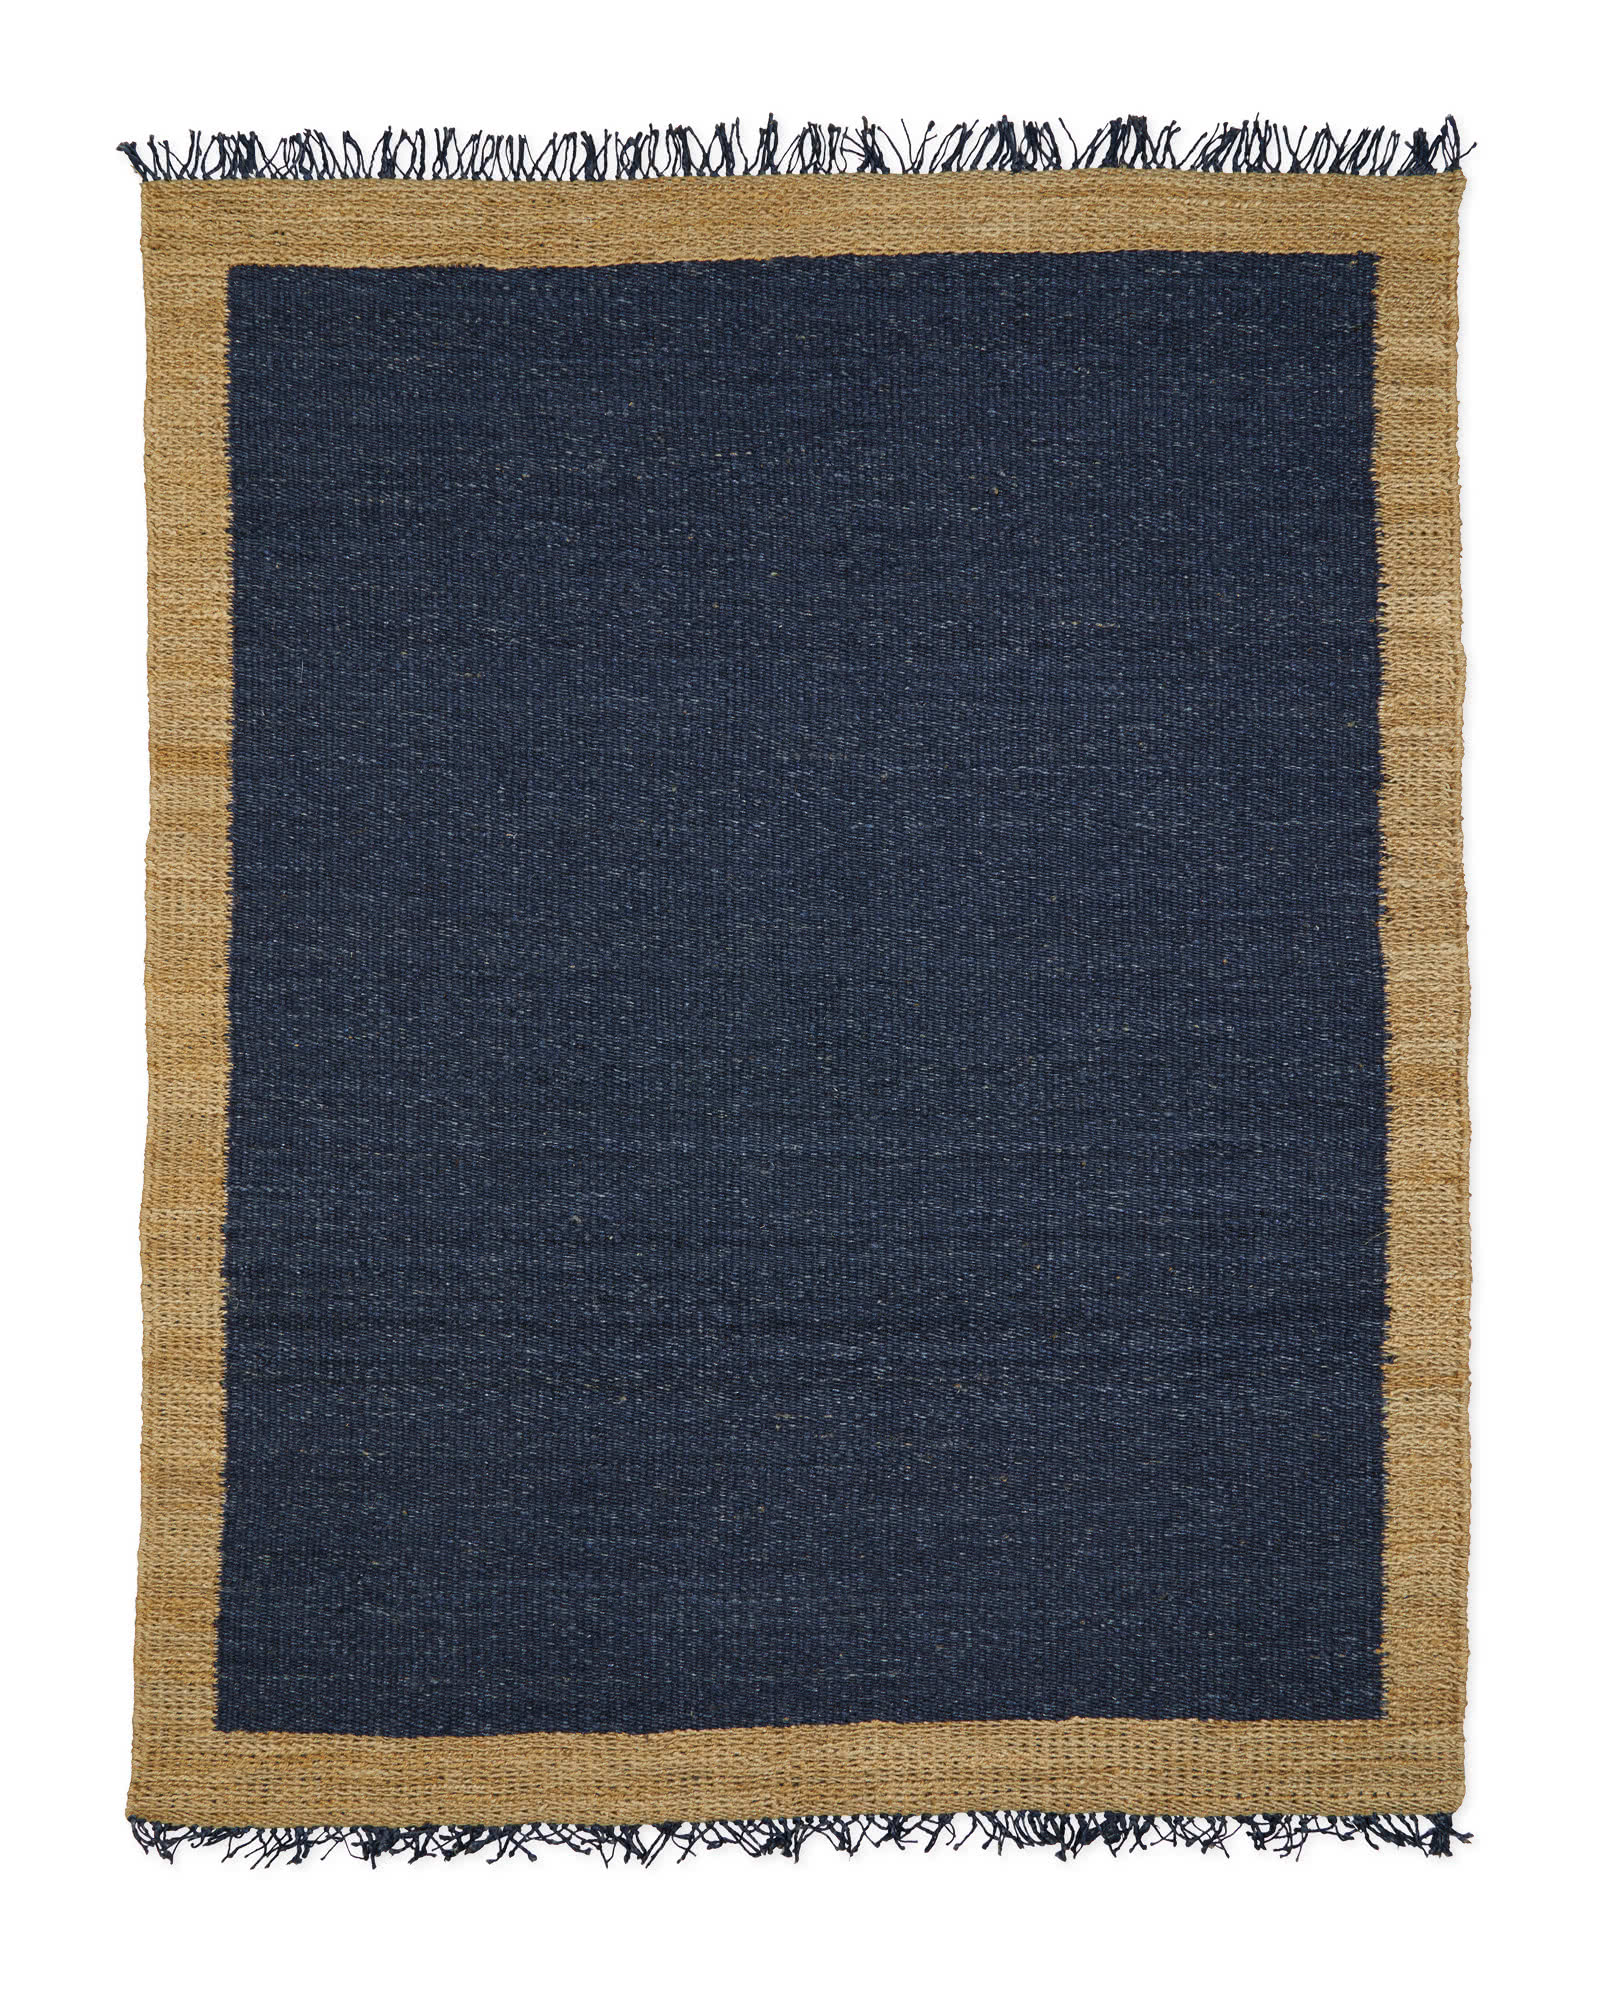 Jute Colorblock Rug, Navy